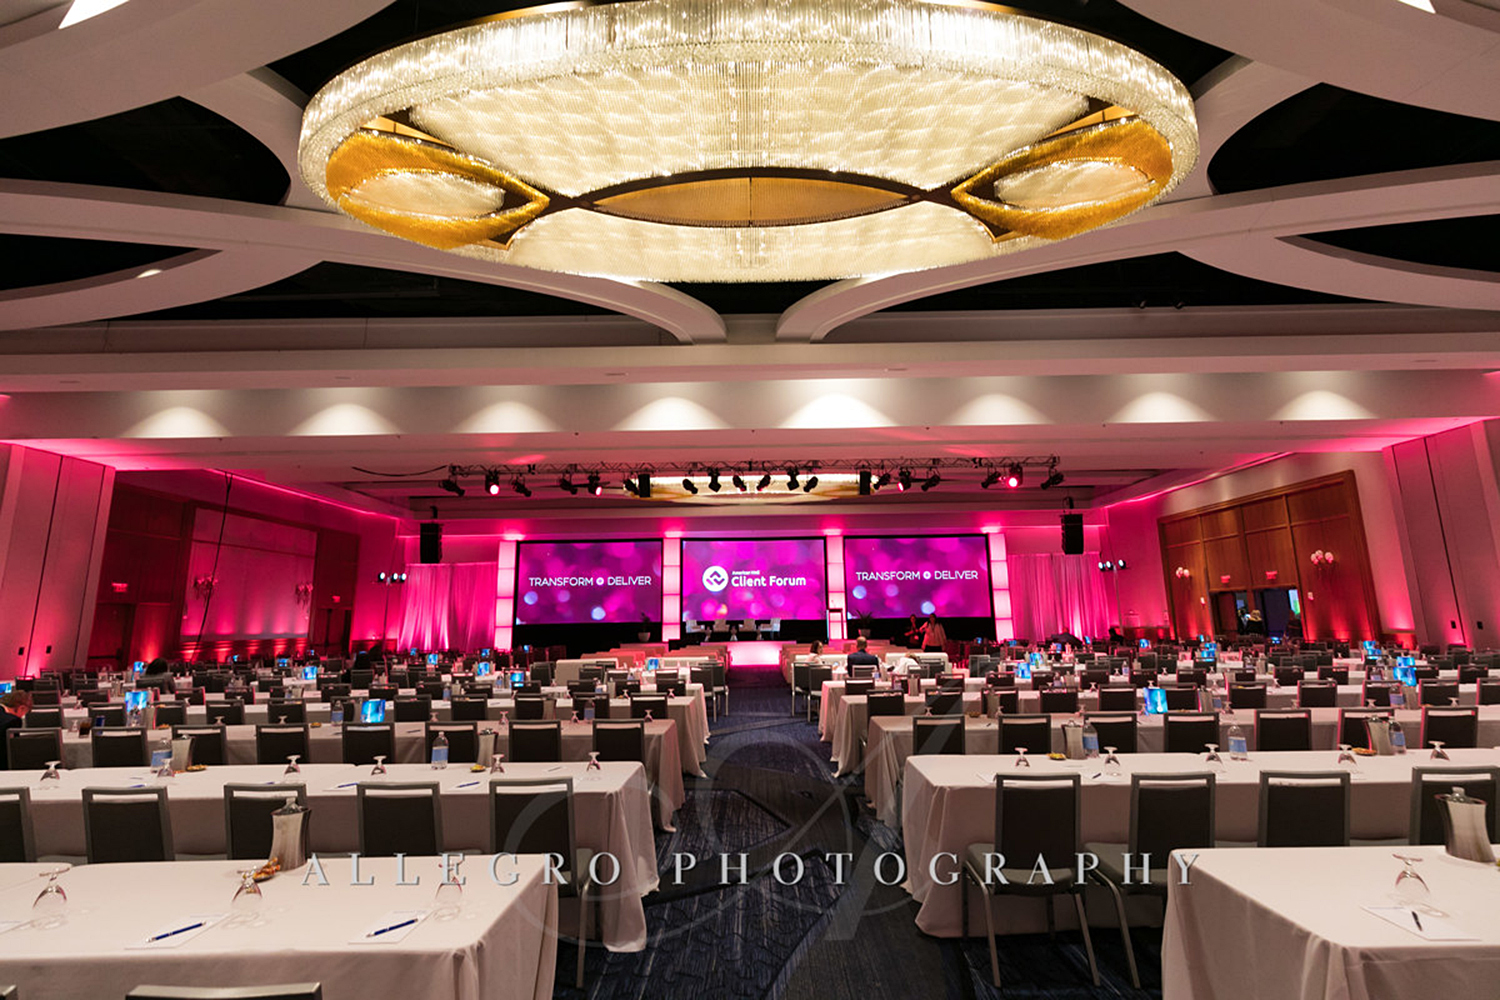 07_Corporate Meetings Conference Stage_AE Events.jpg